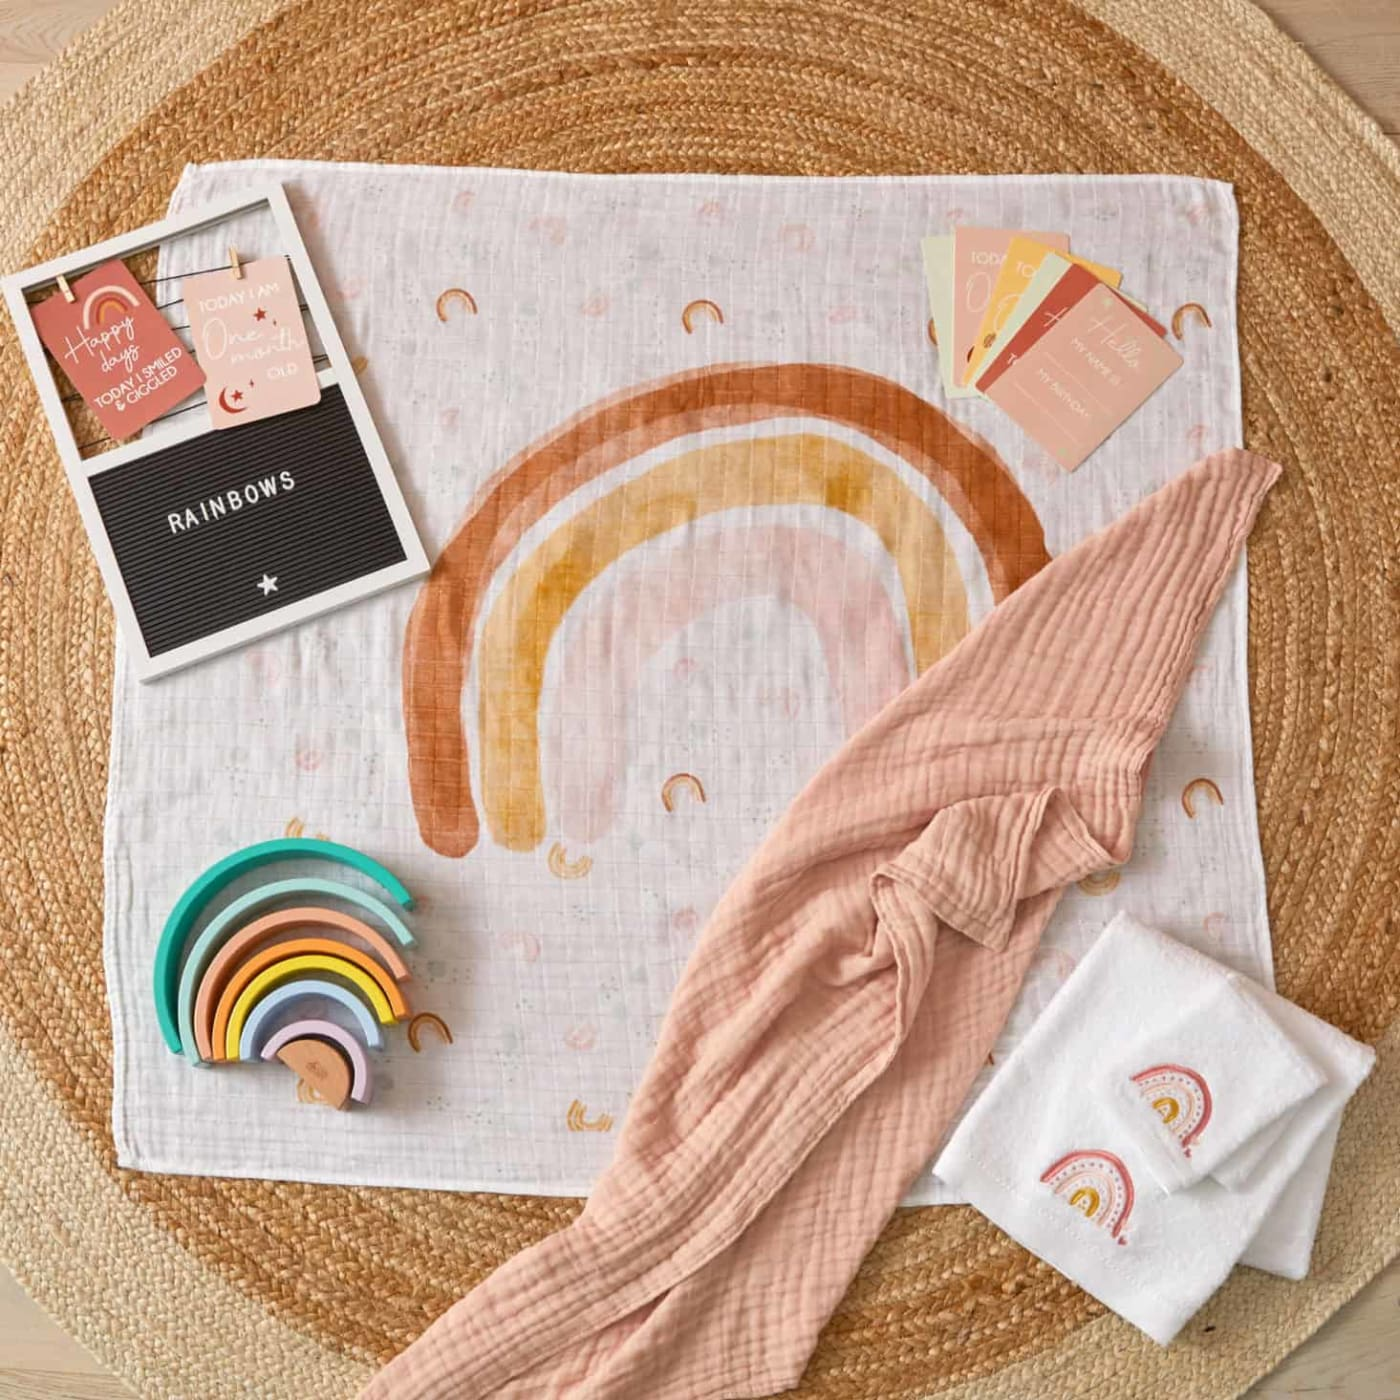 Nordic Kids Milestone Cotton Muslin & Baby Photo Cards - Rainbow - Rainbow - GIFTWARE - MILESTONE BLOCKS/CARDS